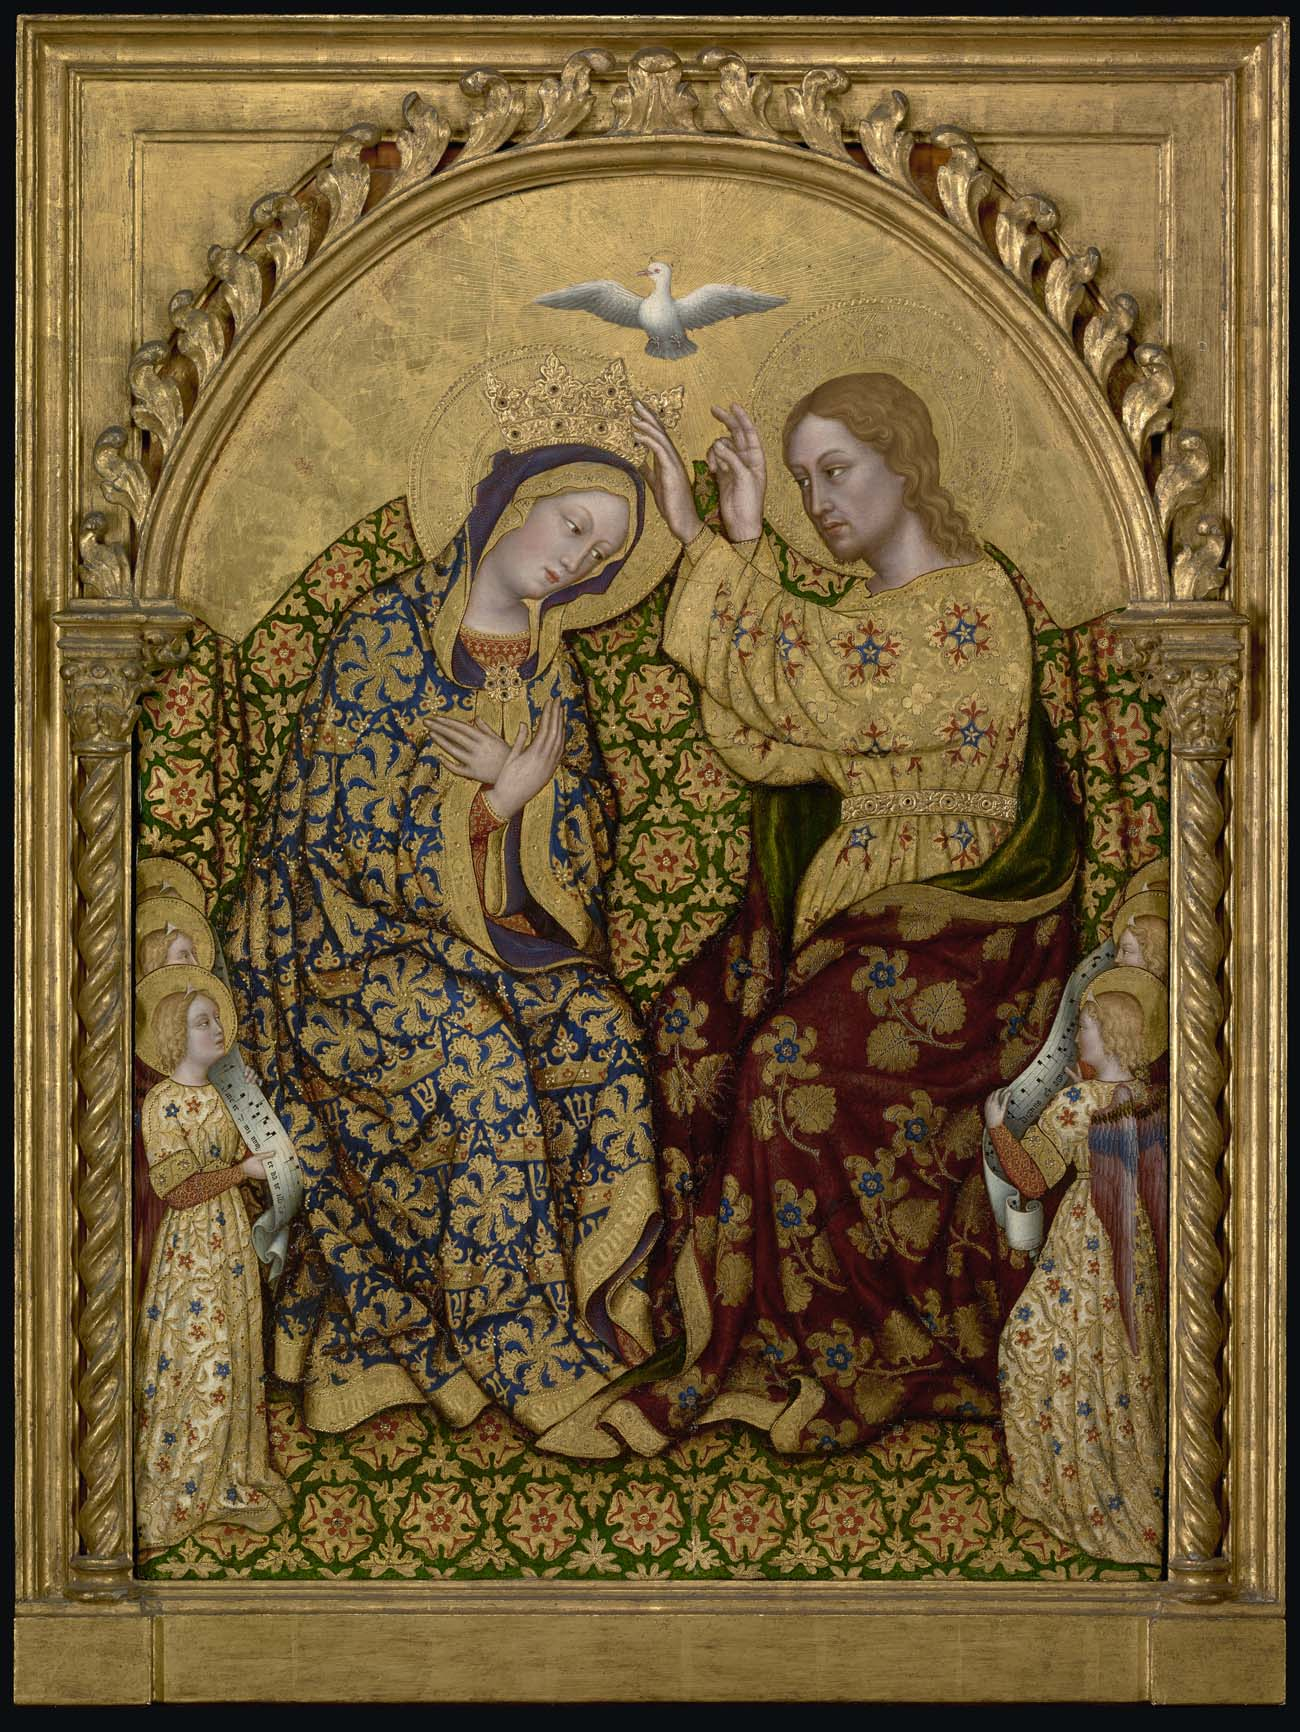 A dove flies above the head of the Virgin Mary in a gilded Renaissance panel painting